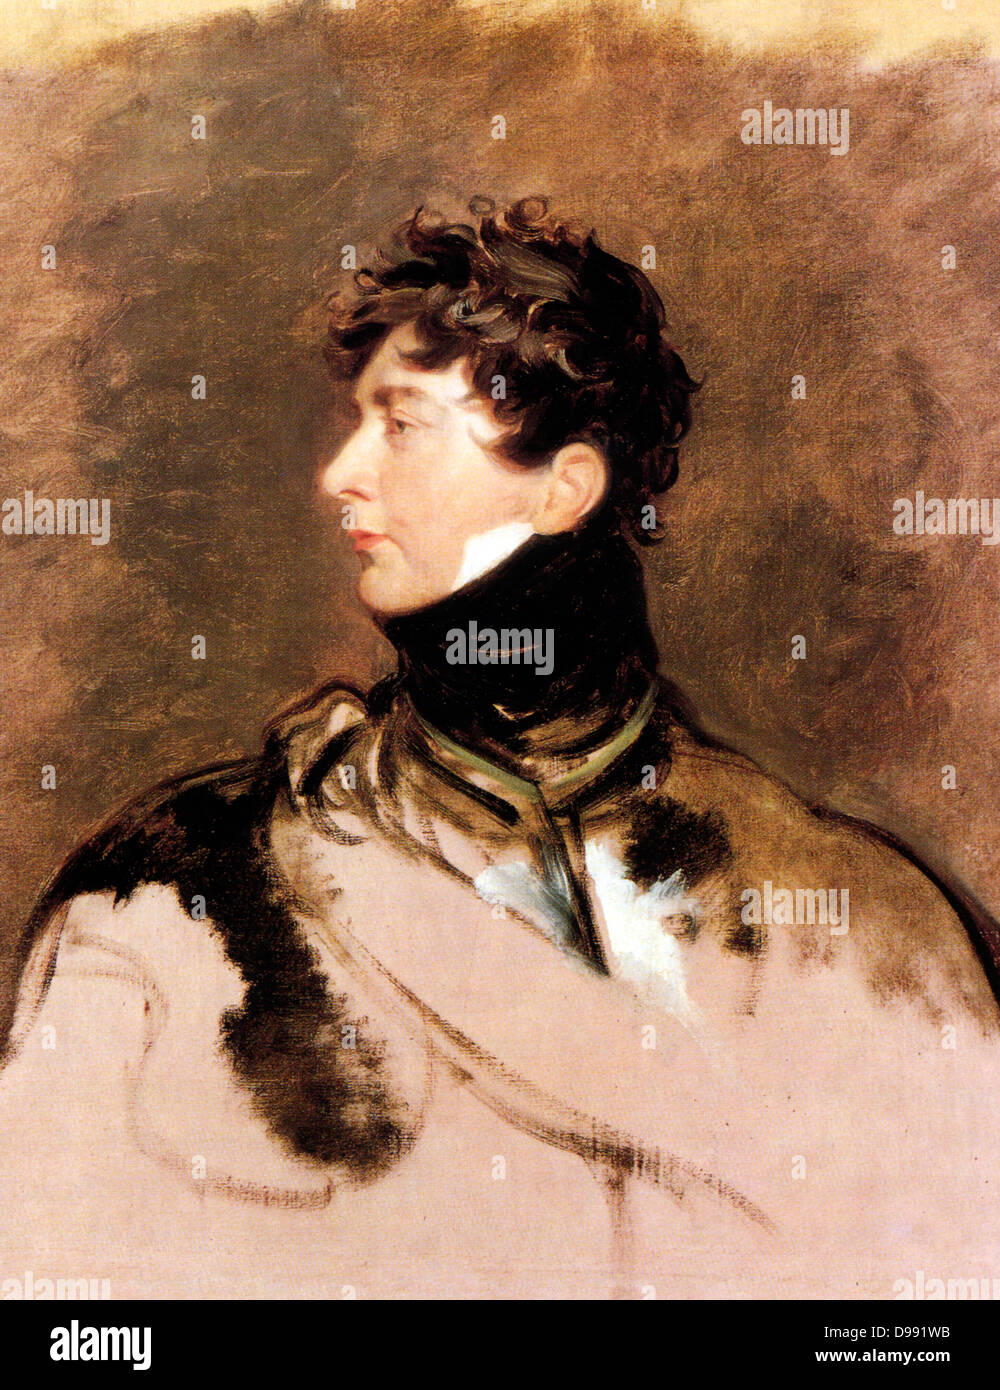 George IV by Sir Thomas Lawrence. George IV 1762 –1830, King of the United Kingdom of Great Britain and Ireland - Stock Image